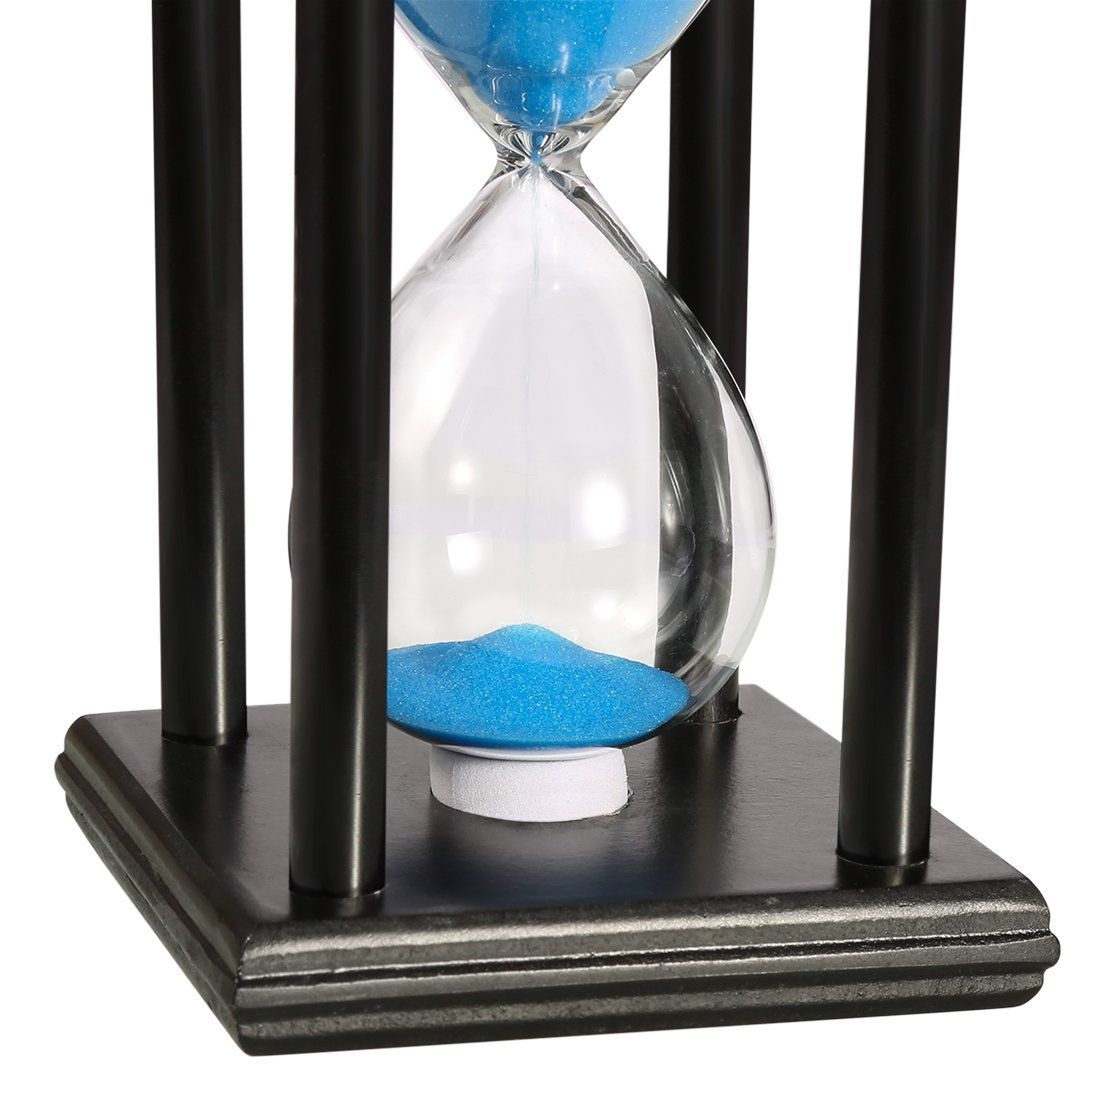 bojin 10 minute hourglass wooden black stand hourglass sand timer